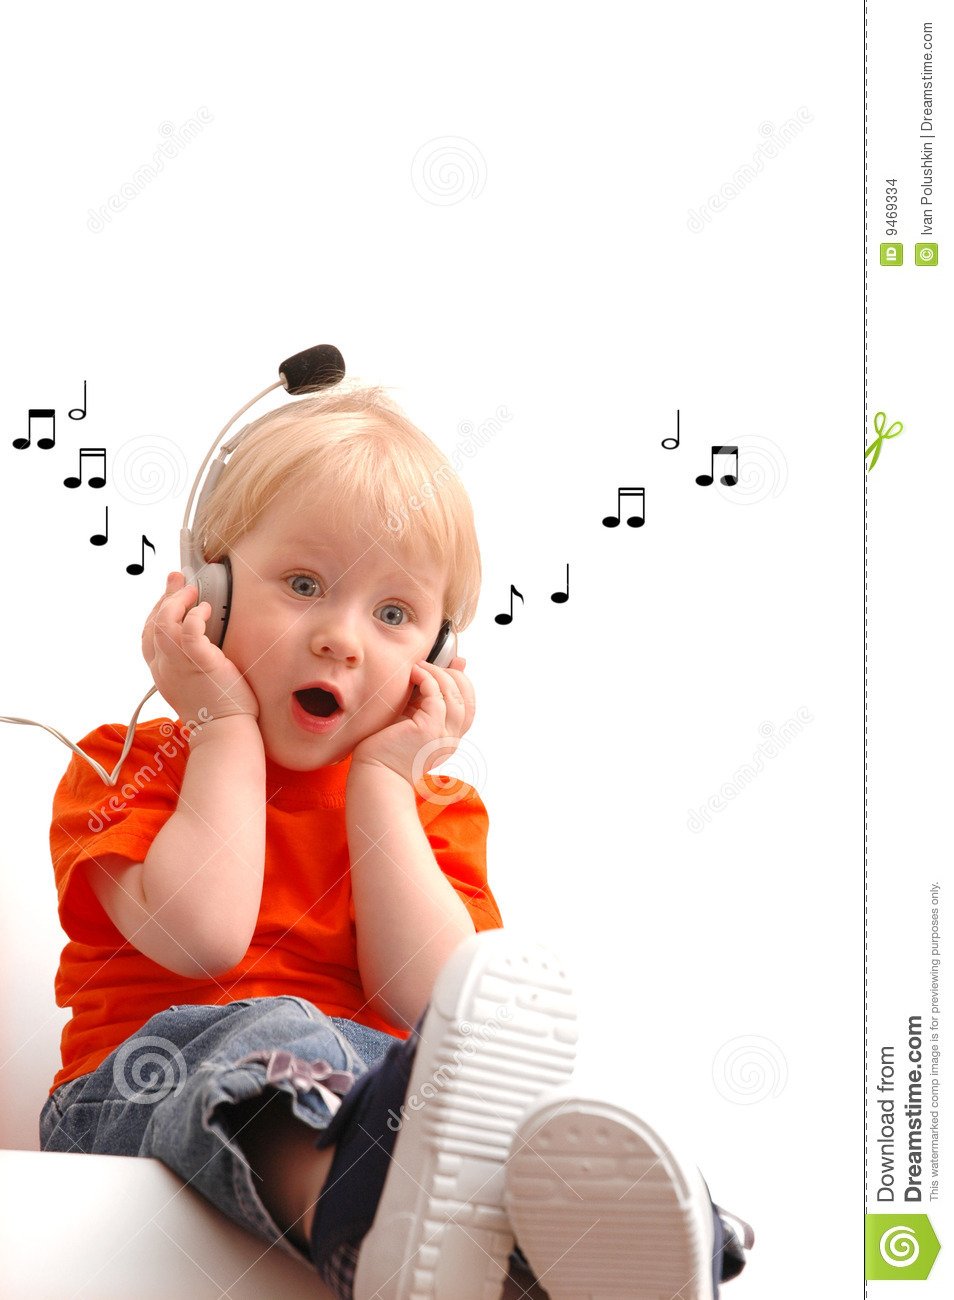 Child Of 2 Years Listening Music Stock Images - Image: 9469334